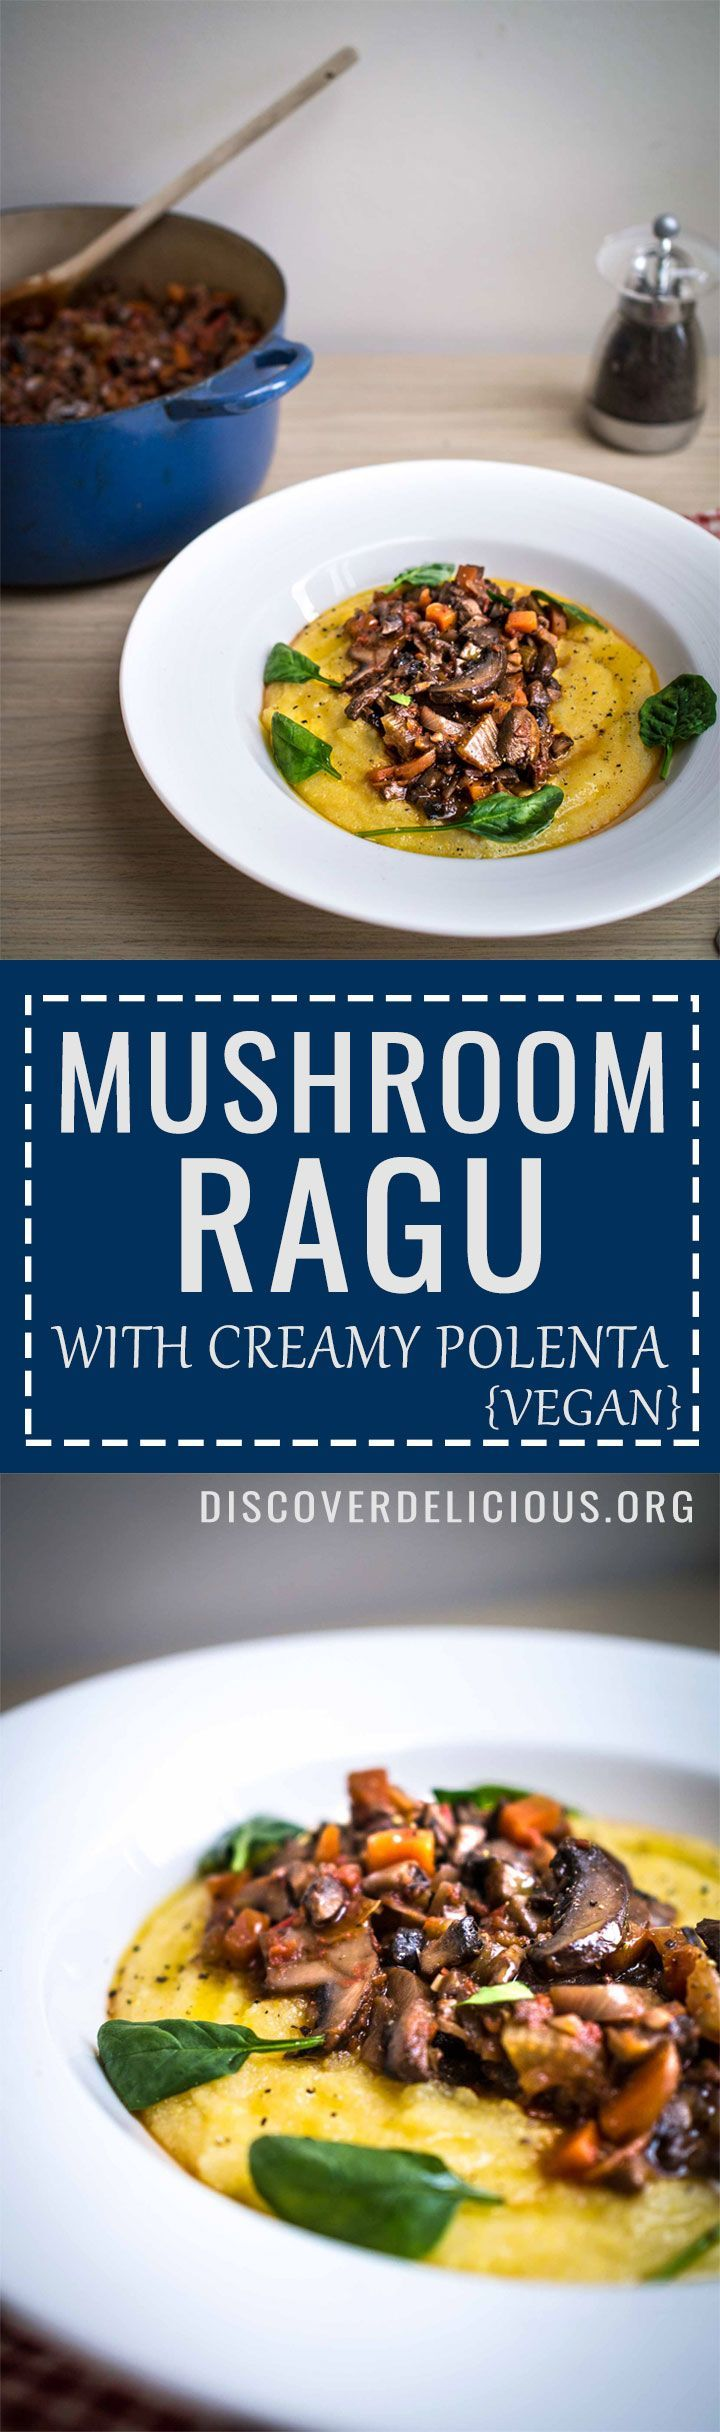 Mushroom Ragu with Creamy Polenta [Vegan] | Discover Delicious | www.discoverdelicious.org | vegan food blog